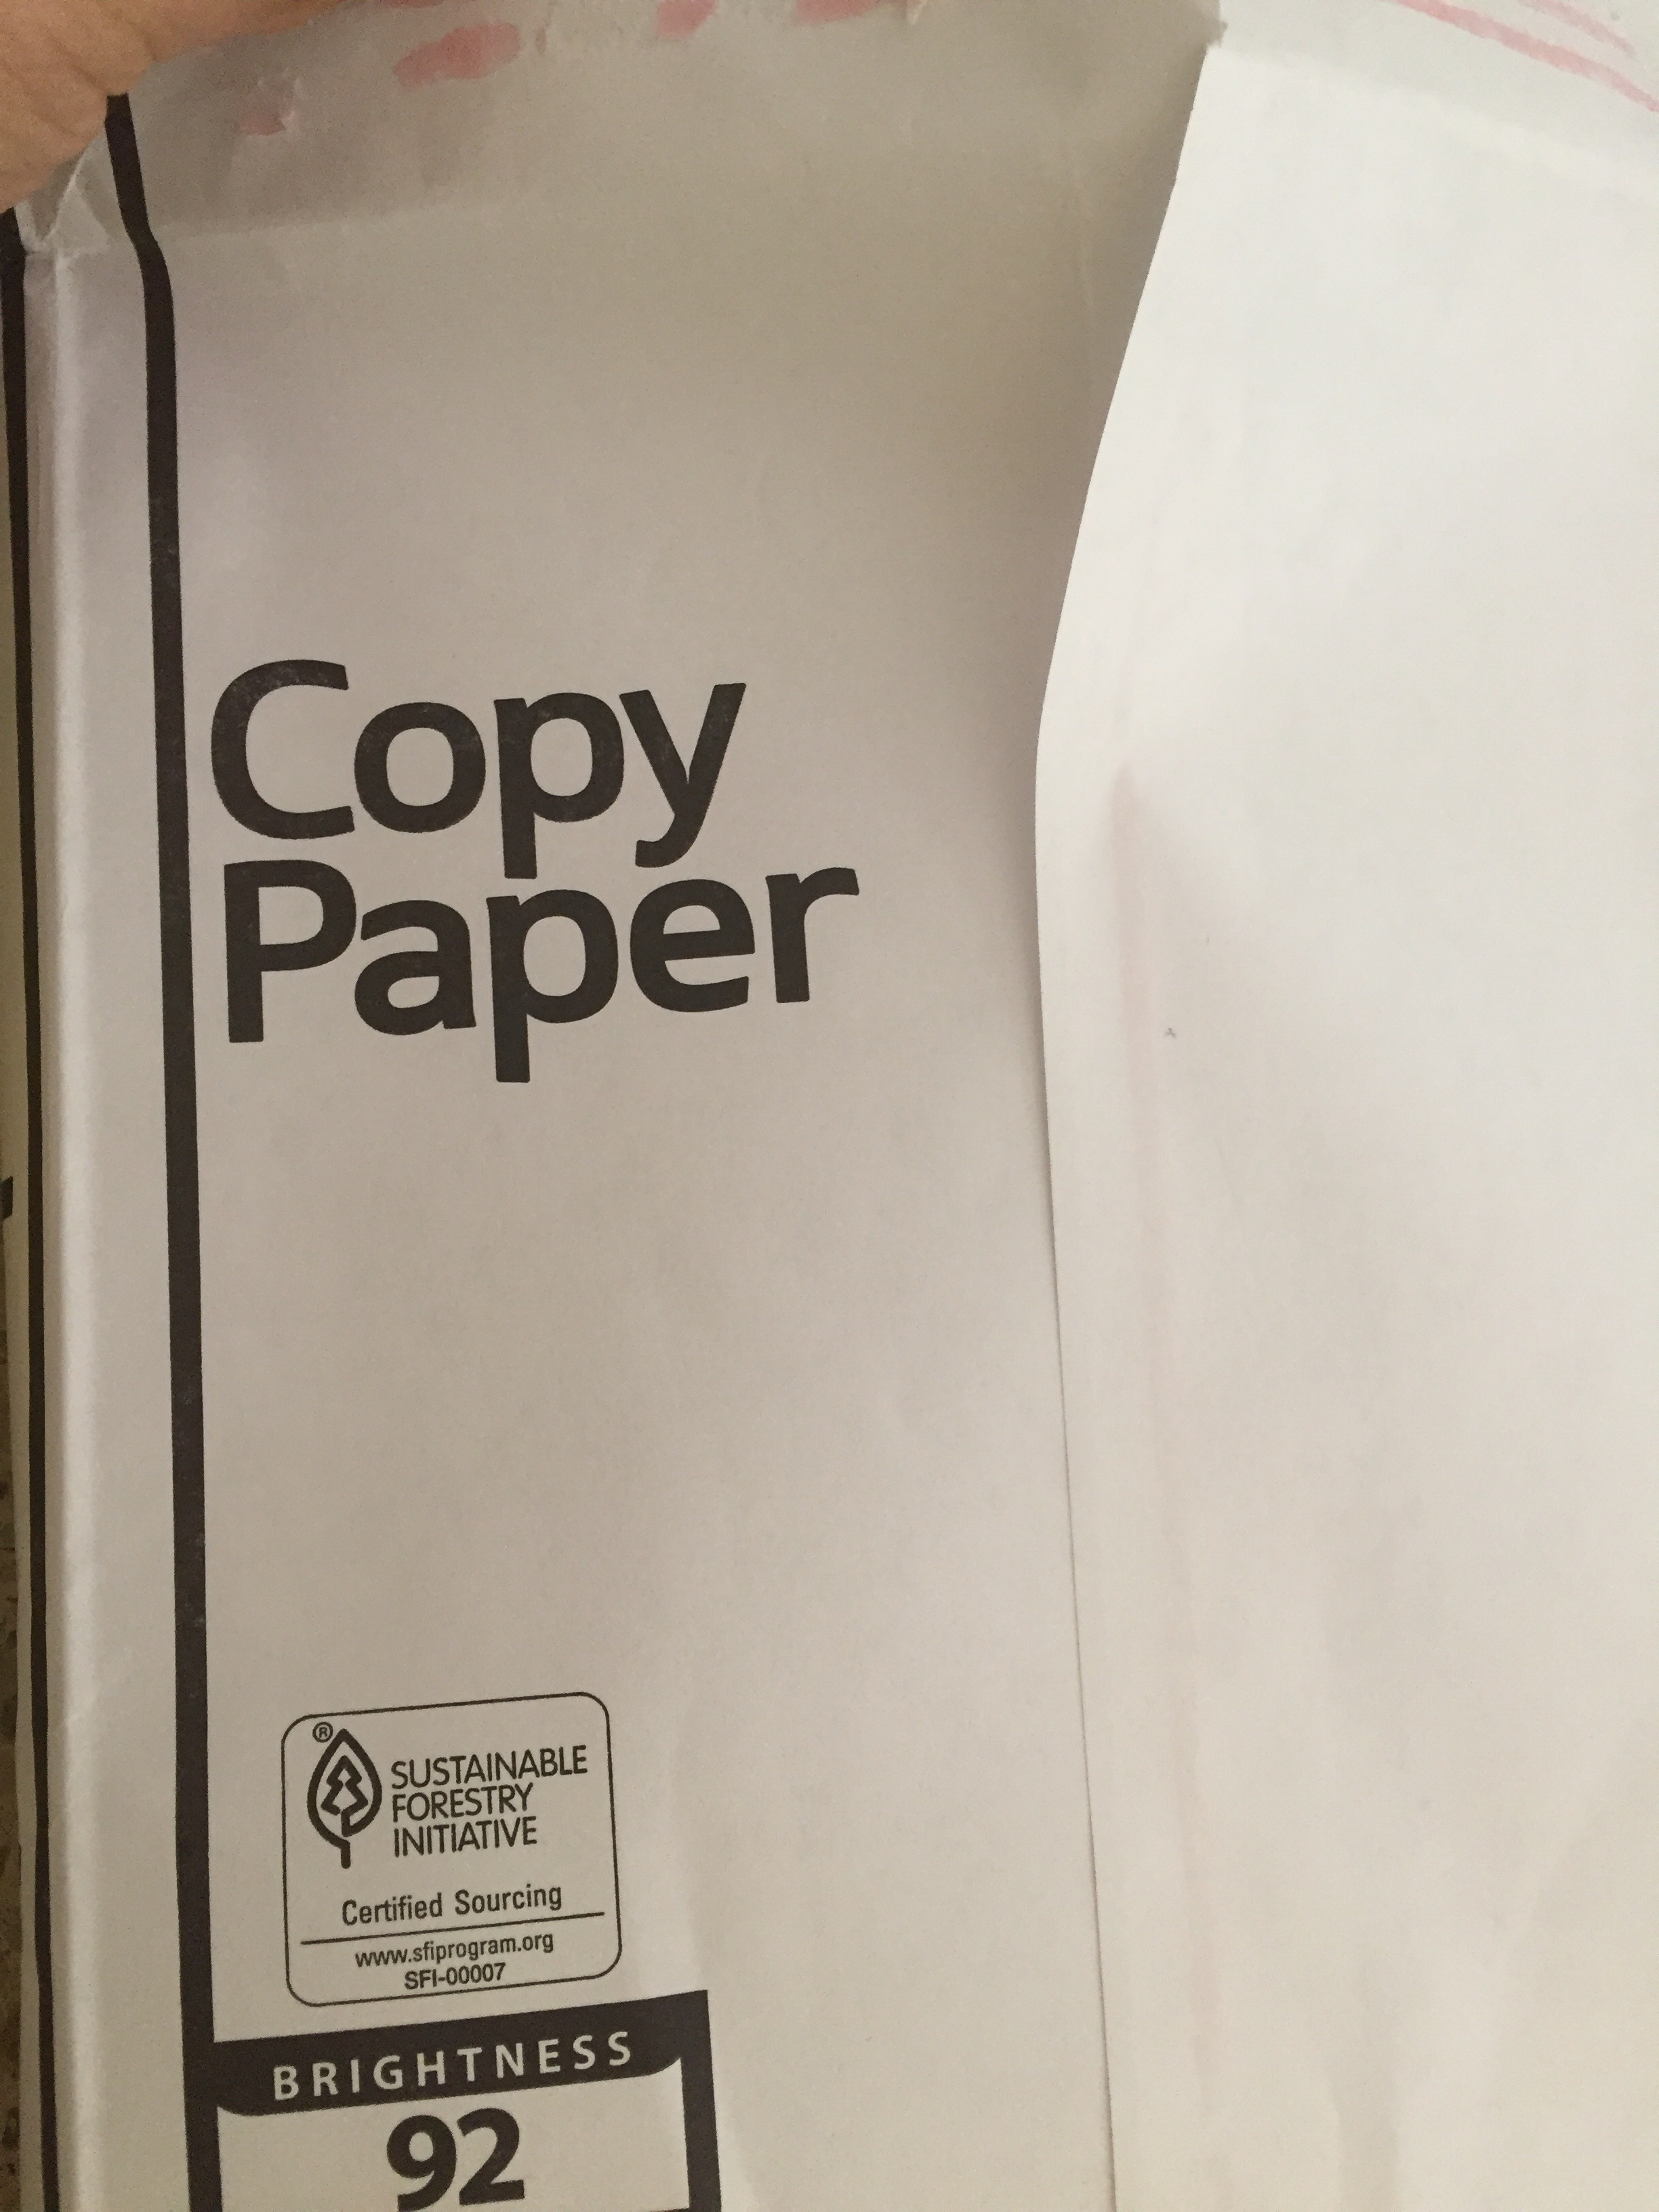 Thick paper is better